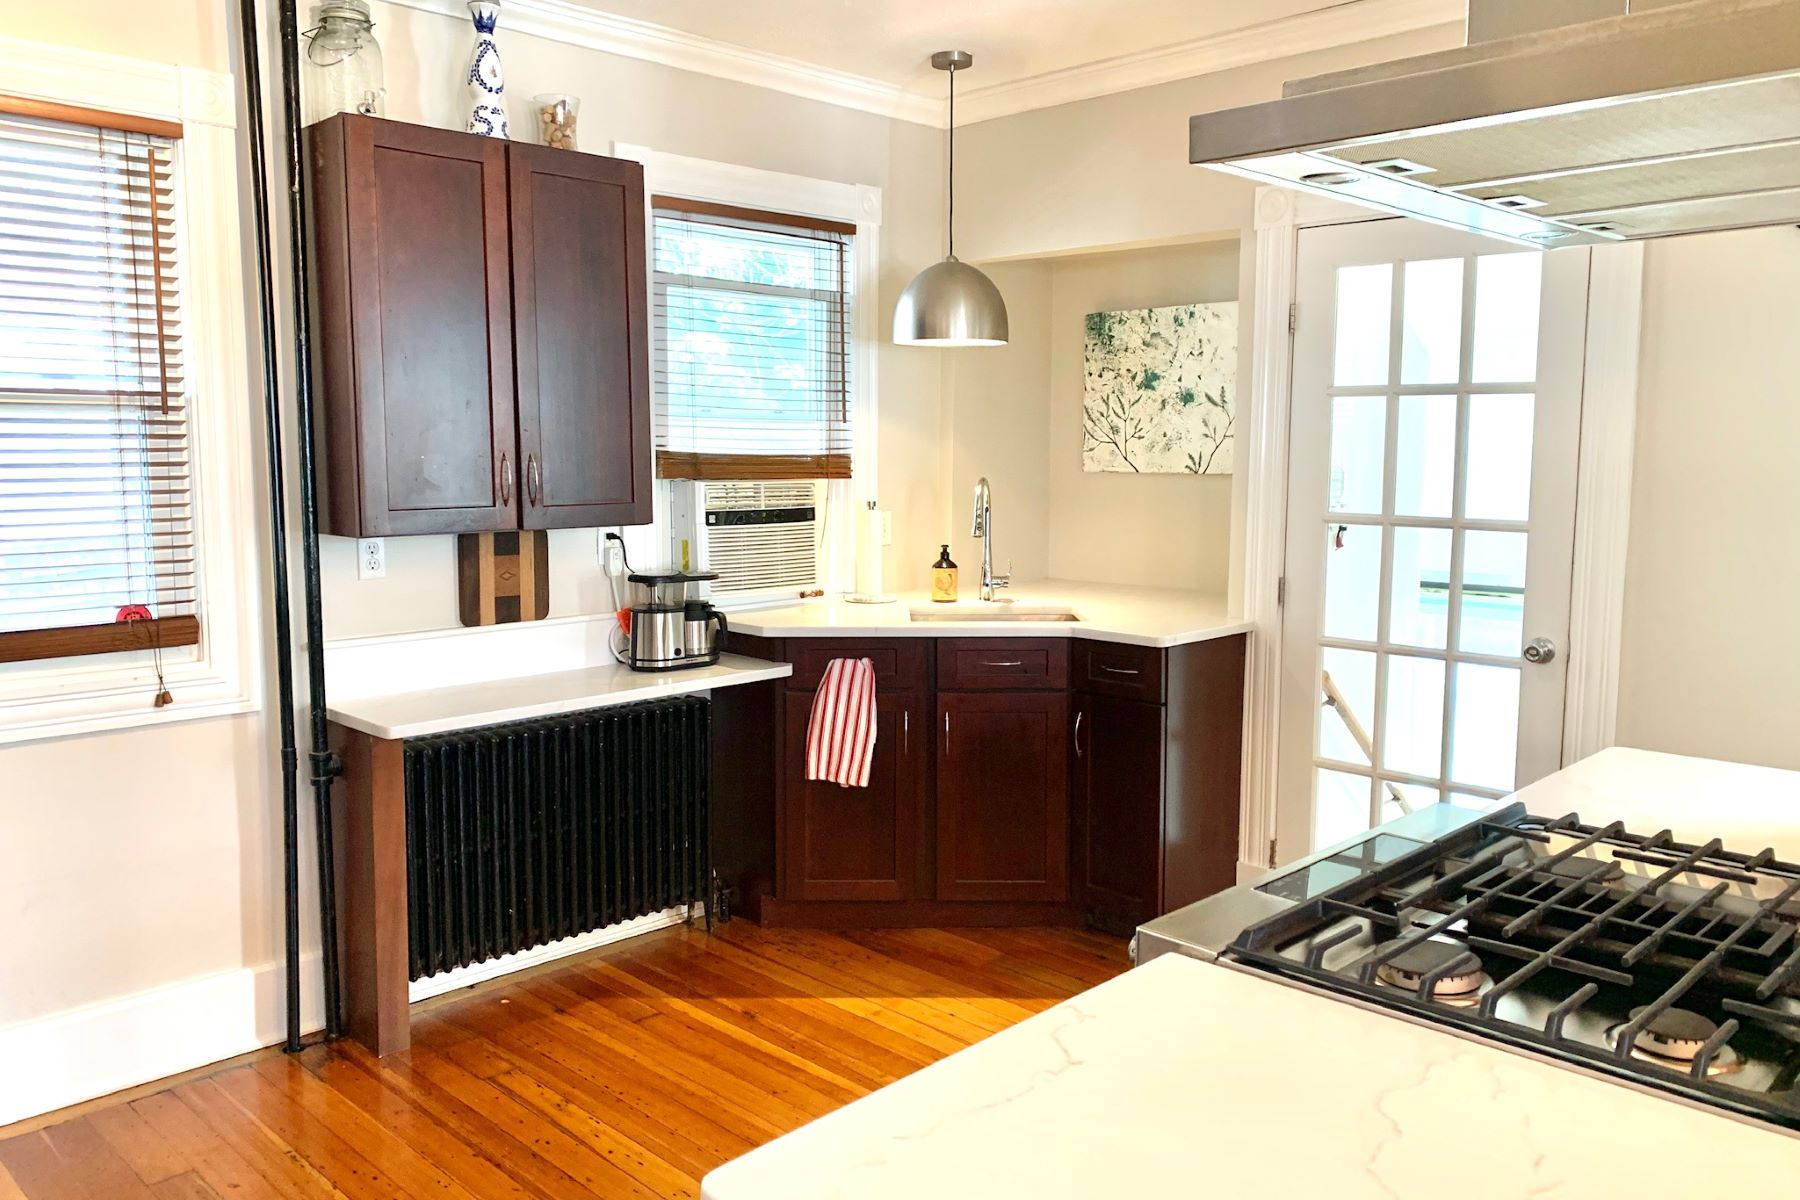 Additional photo for property listing at Adorable Updated Newport Cottage 6 Nicol Terrace Newport, Rhode Island 02840 United States